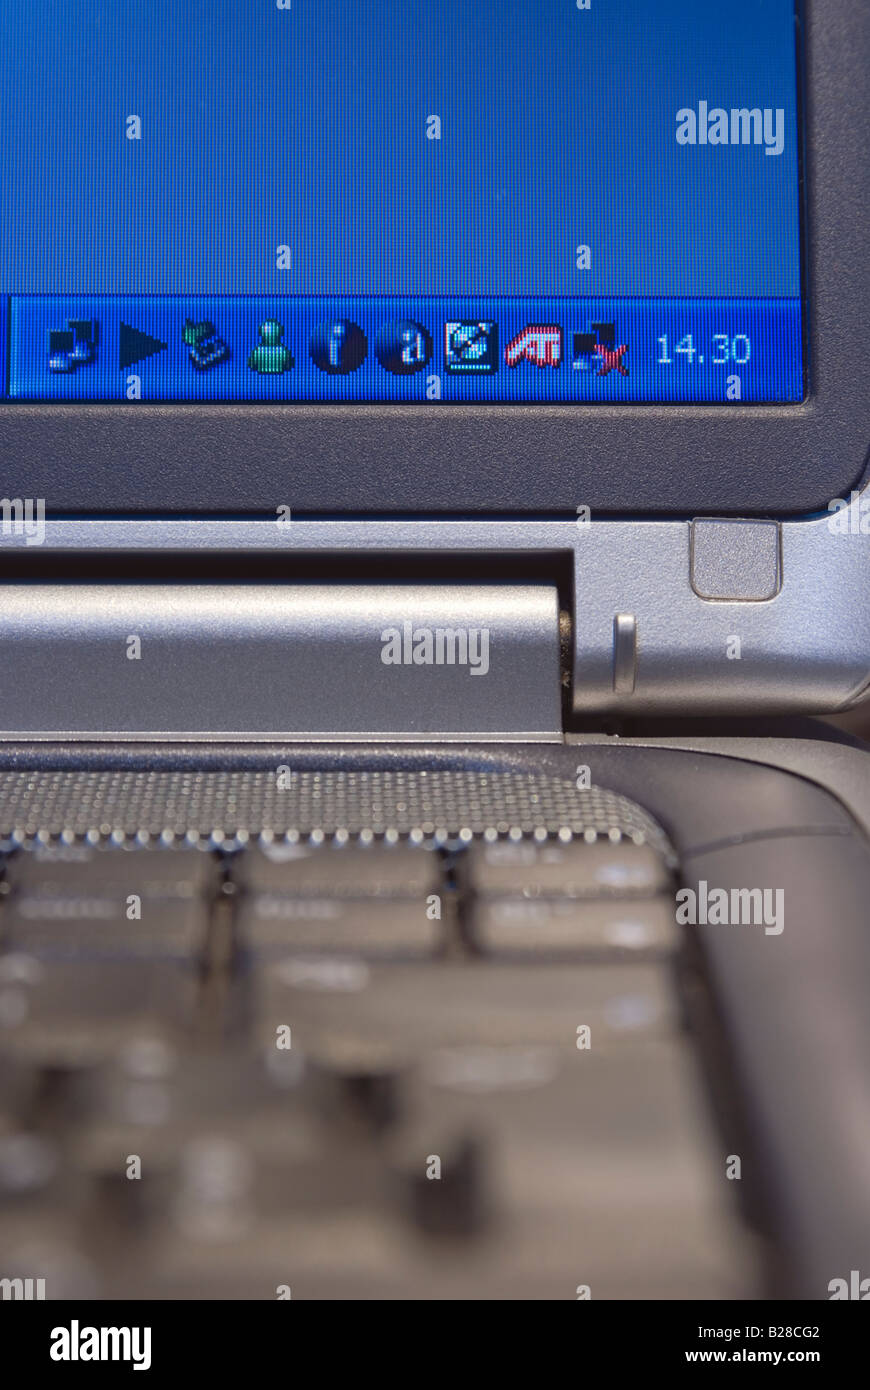 icons on computer screen - Stock Image